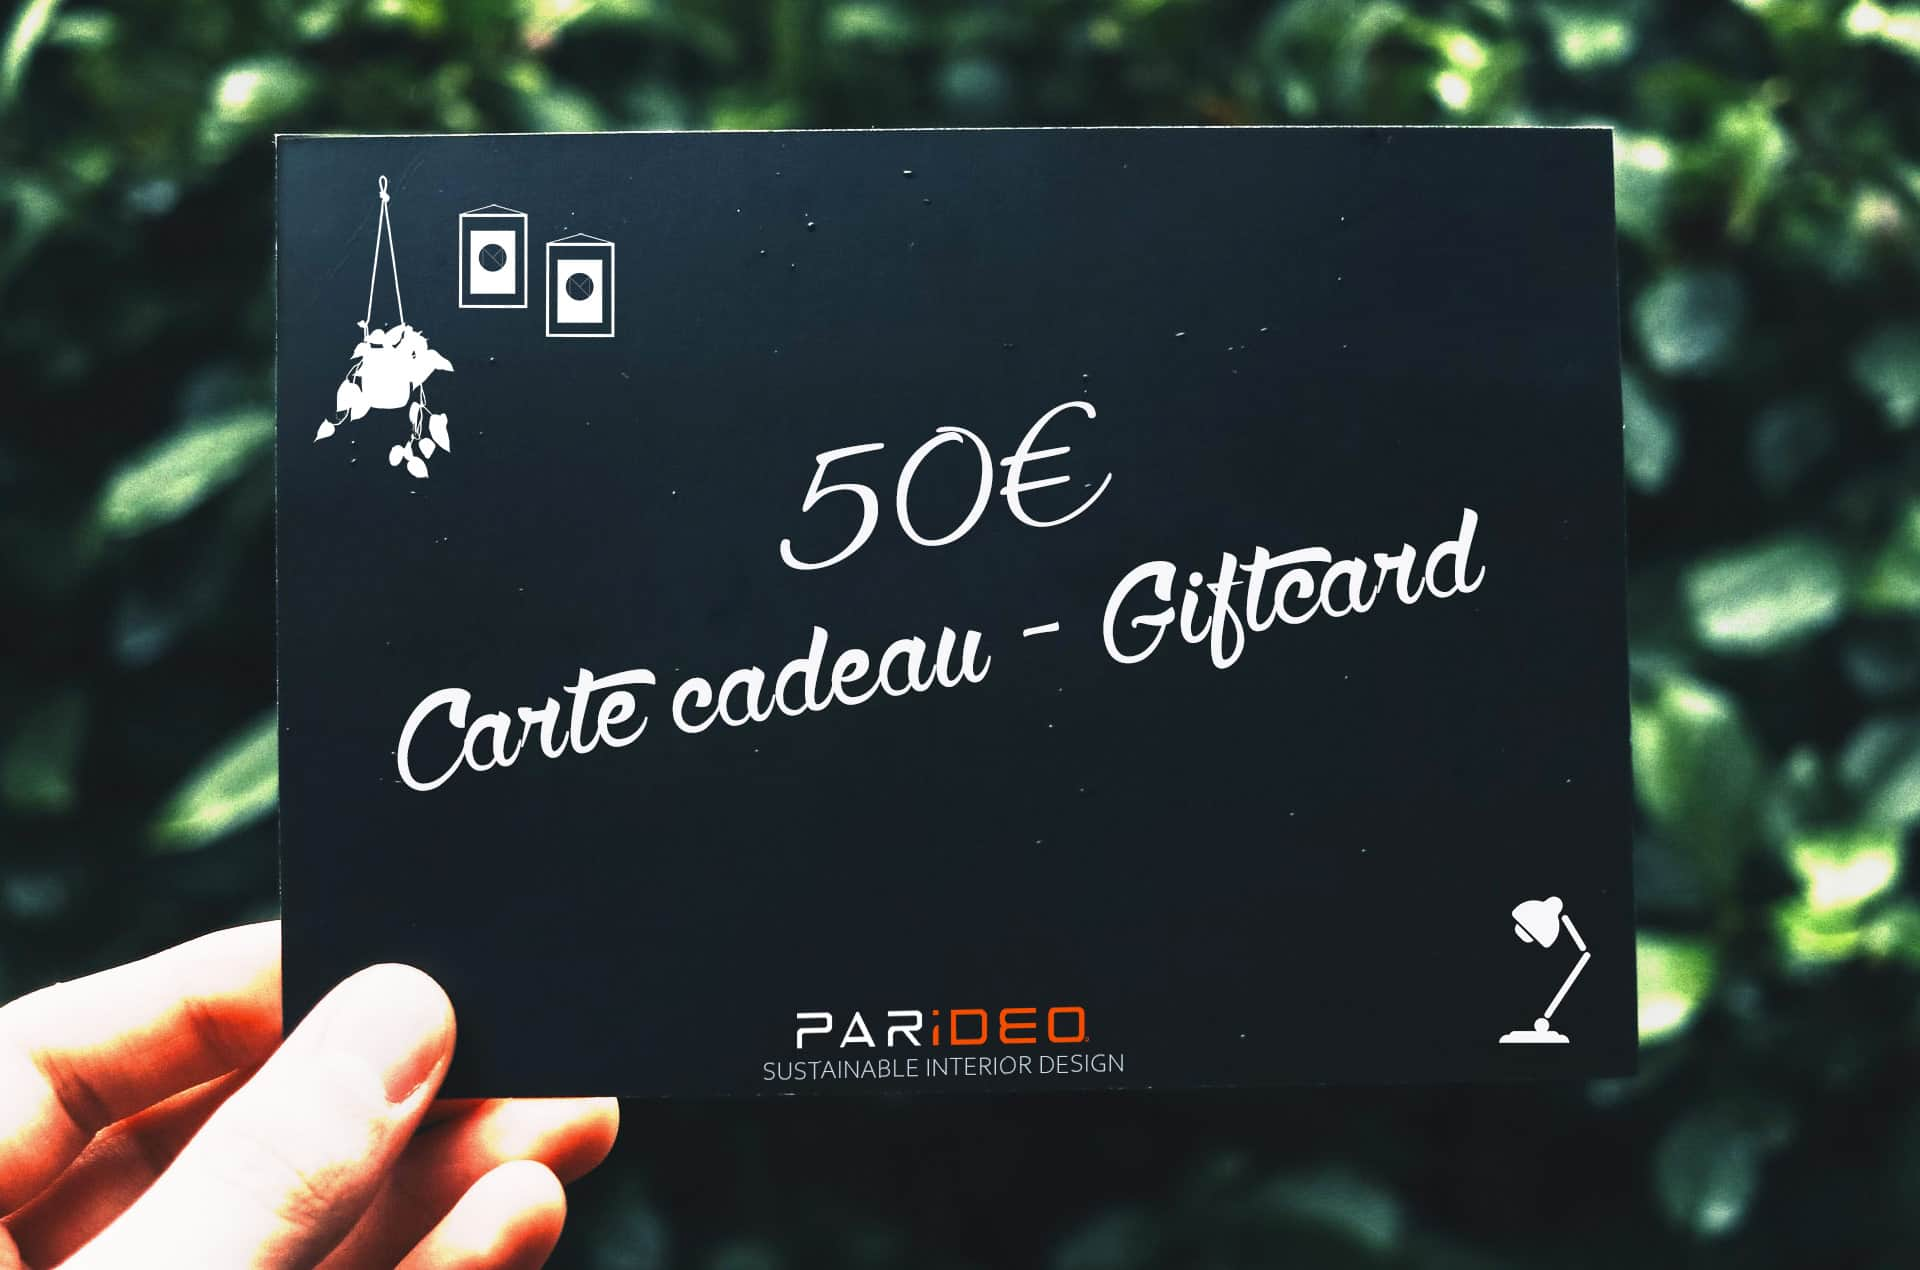 Carte Cadeau deco-mobilier-valeur 50€-PARIDEO design durable